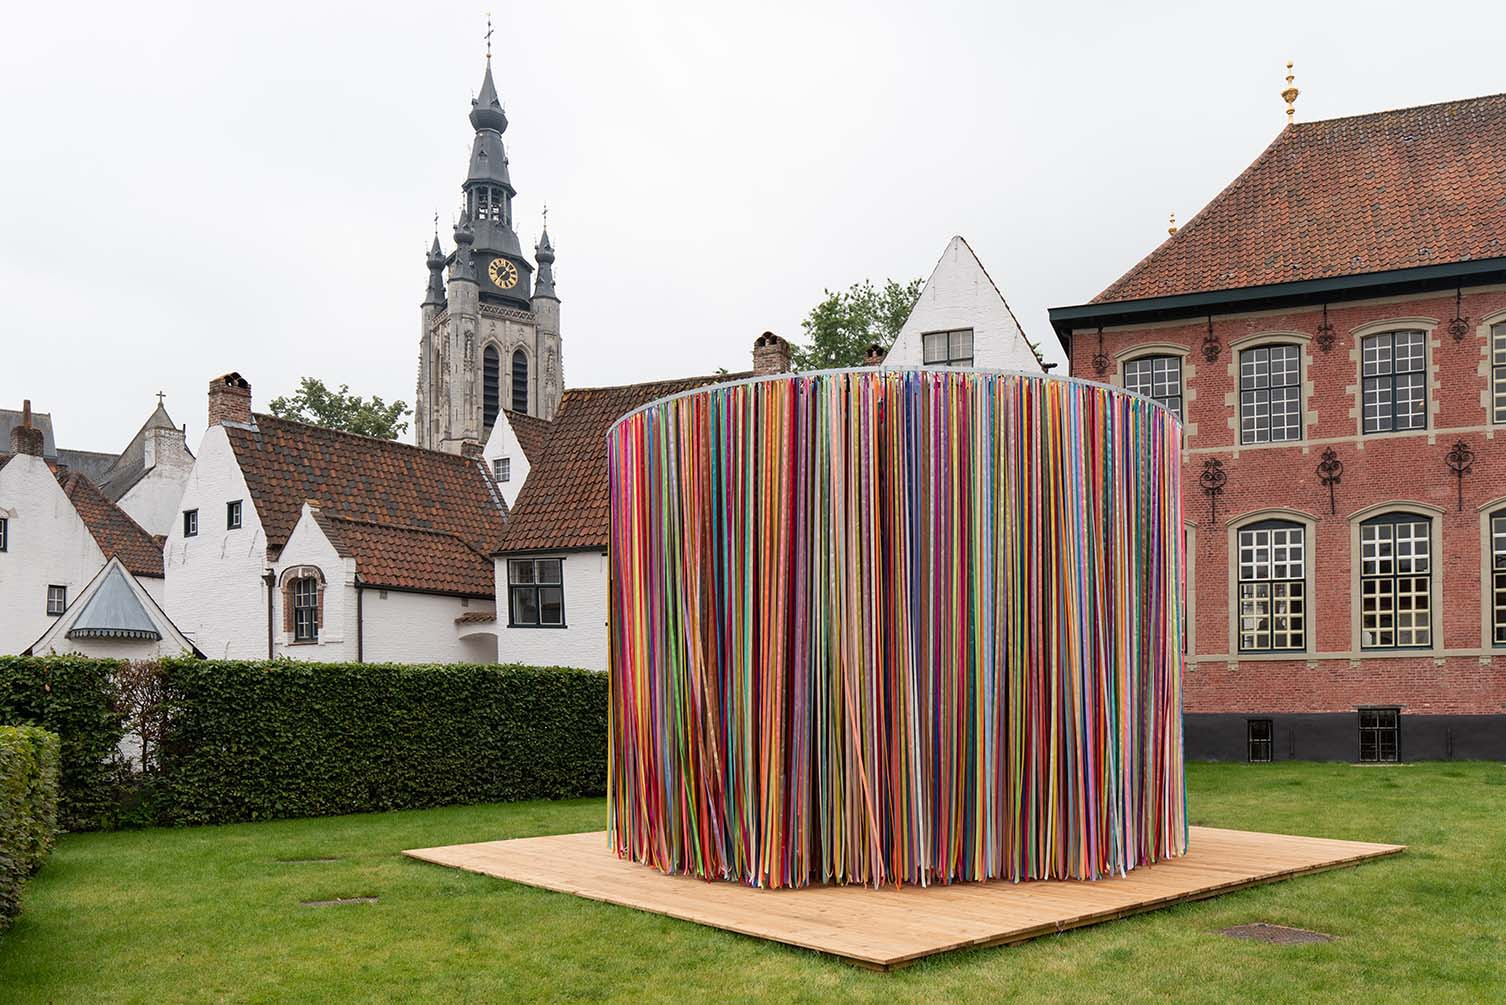 Paradise Kortrijk 2021, Kortrijk and Be-Part Curated by Hilde Teerlinck and Patrick Ronse